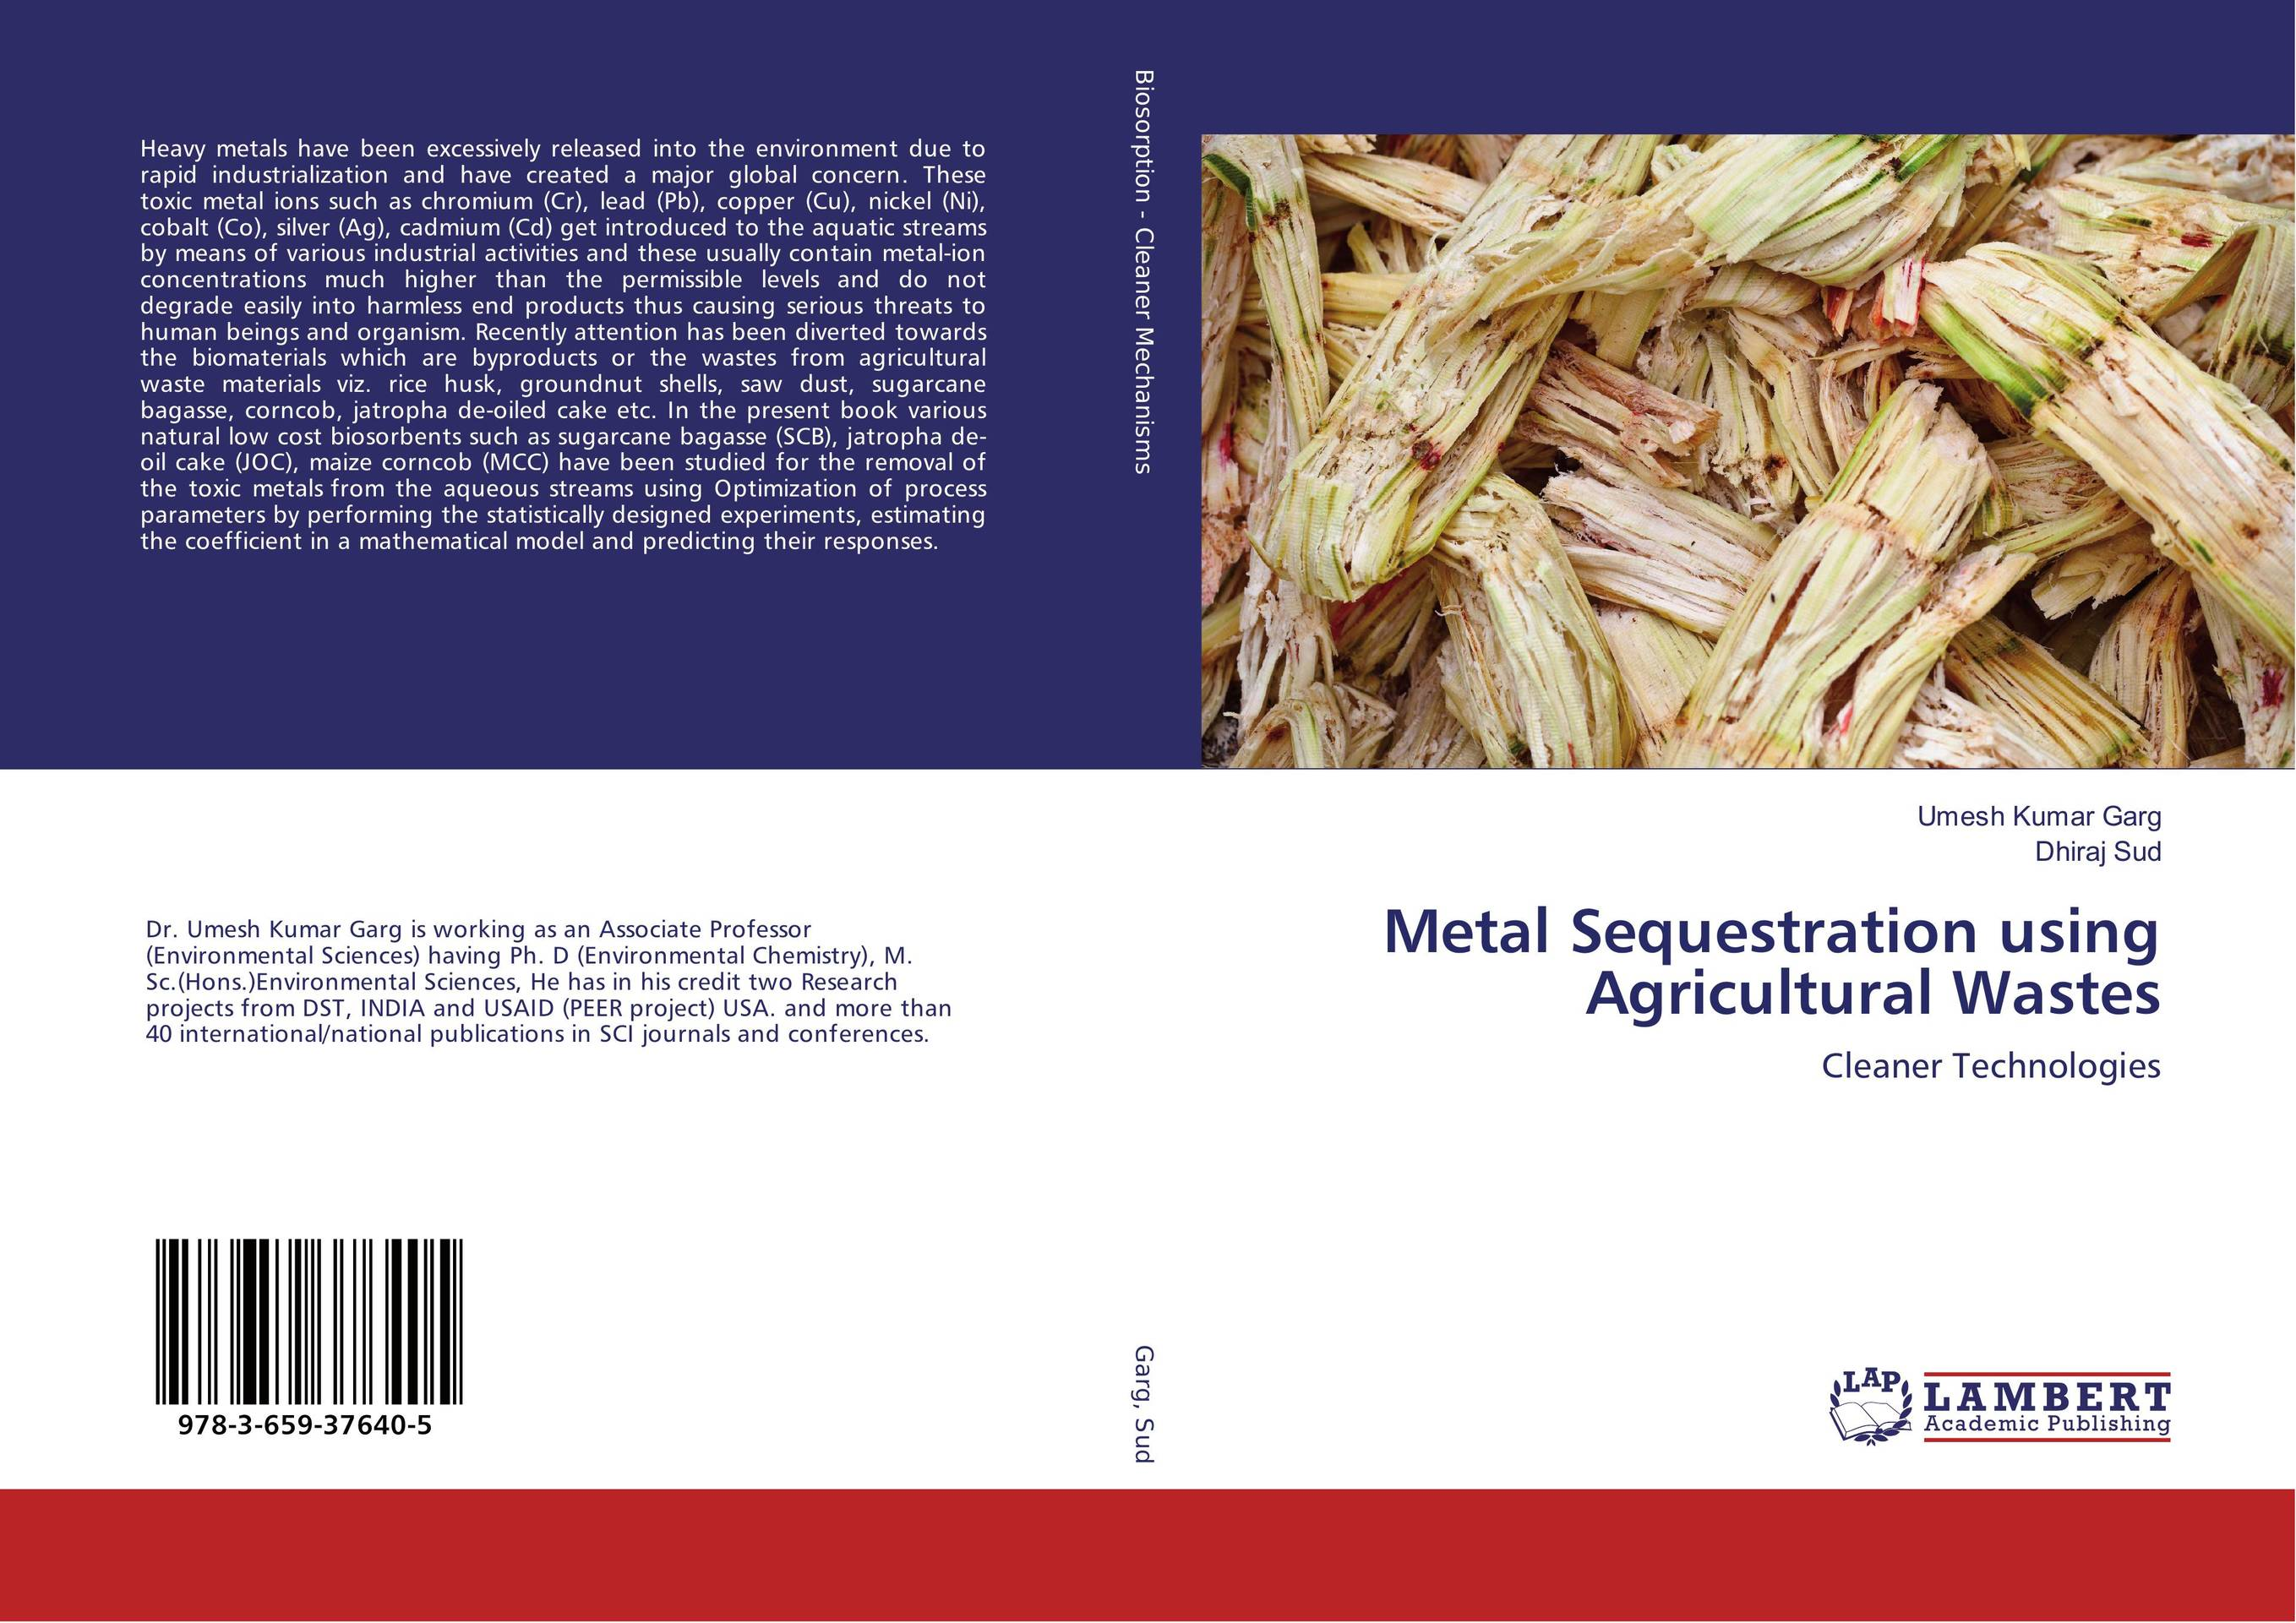 corn cob leaves biomass biosorption industrial wastewater environmental sciences essay Ncsuedubioresources - nc state university biomass are produced during industrial-scale weight of biomass at the beginning of the biosorption.